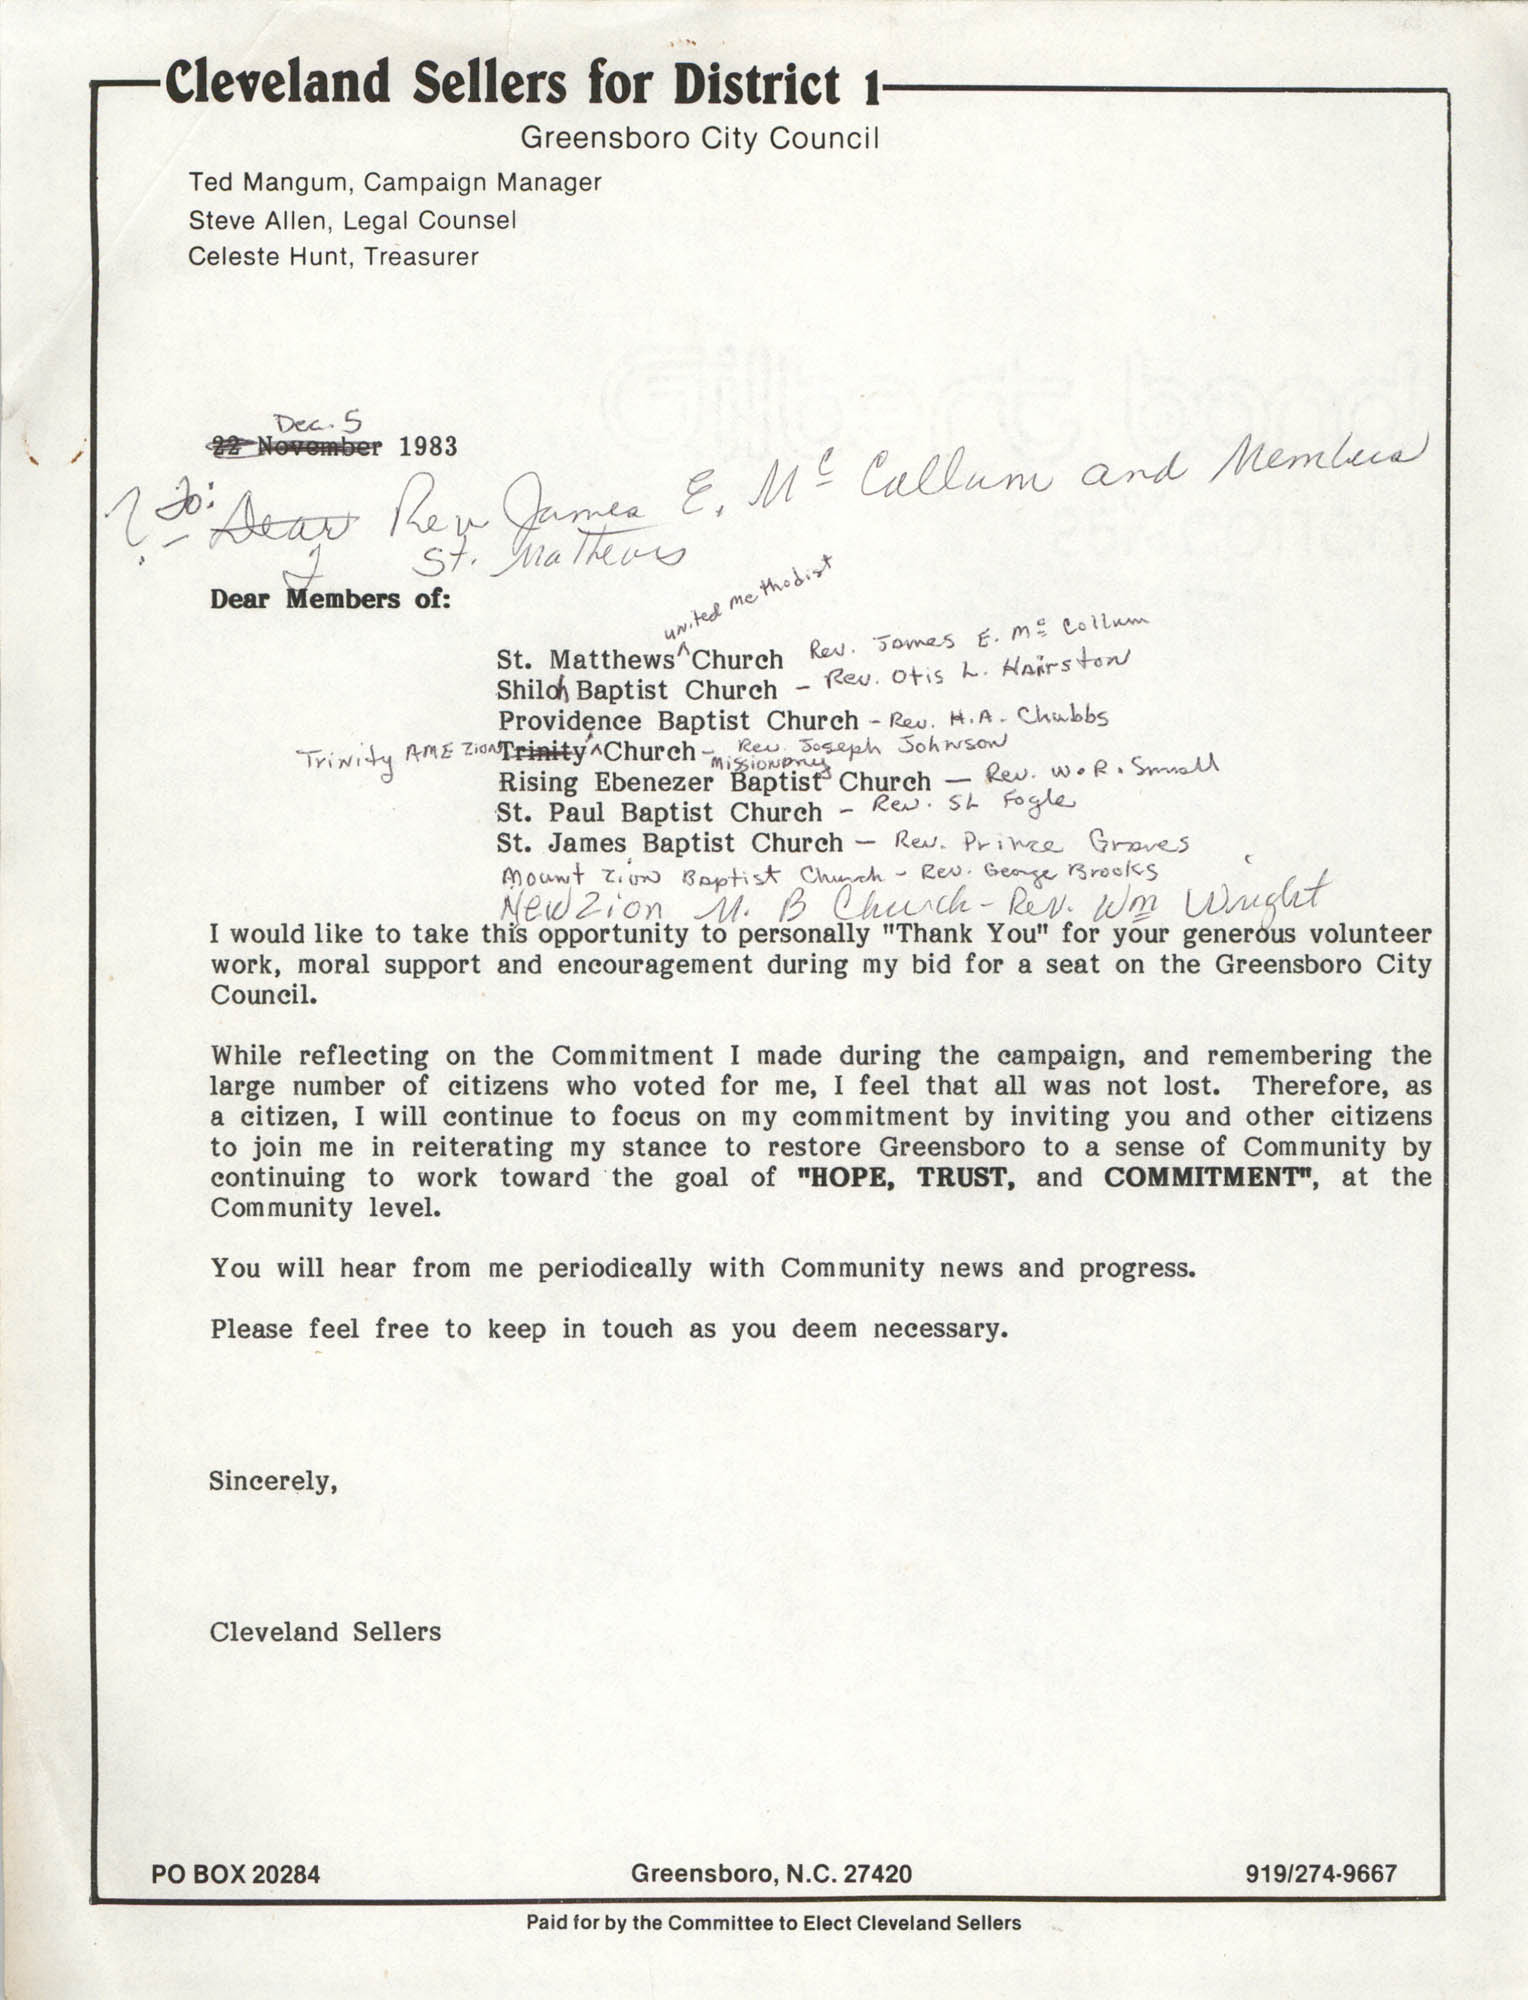 Letter from Cleveland Sellers to Church Members, November 22, 1983